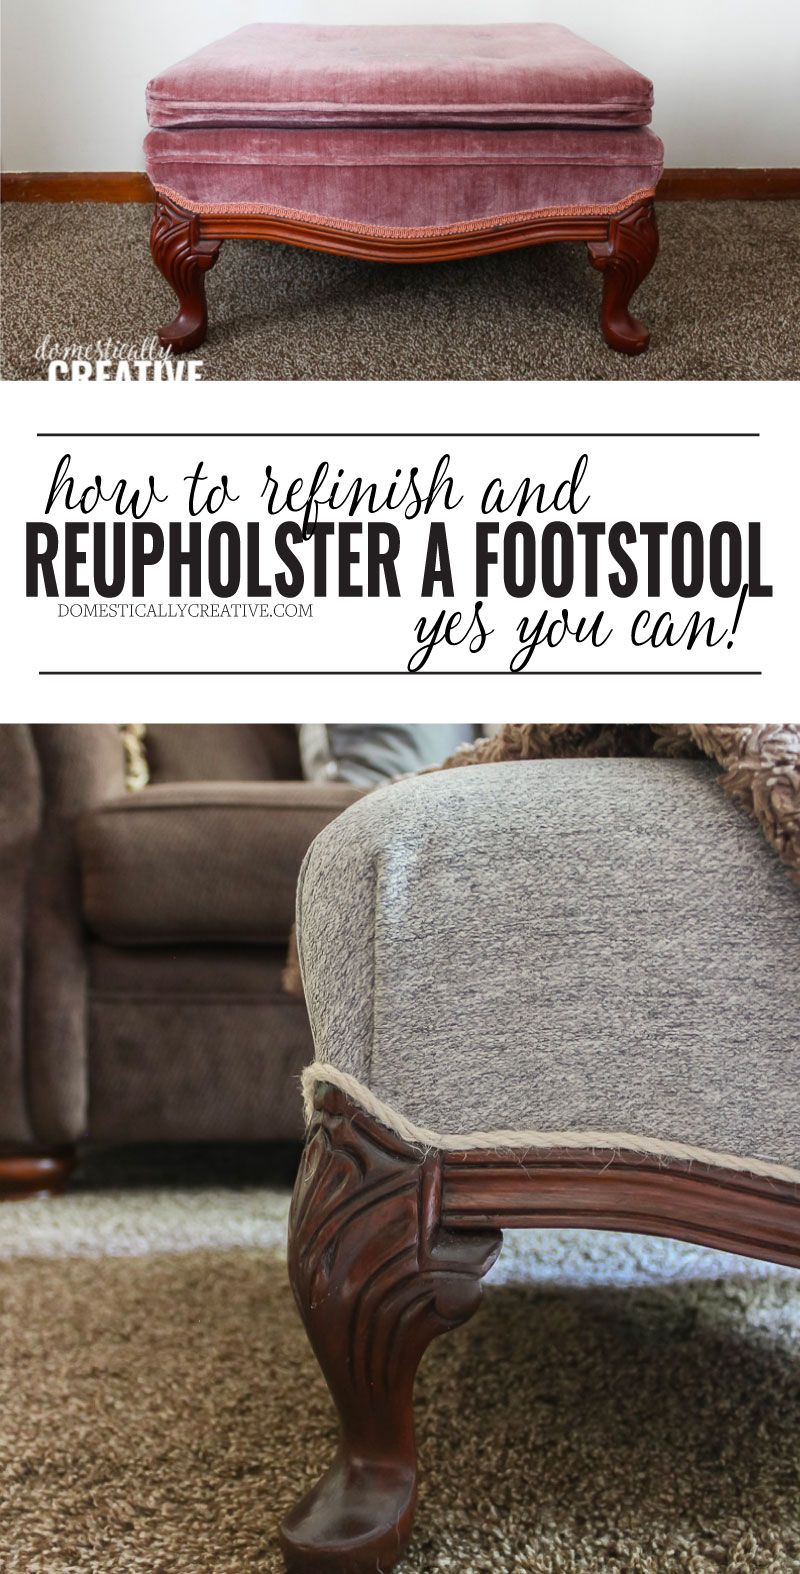 How To Refinish And Reupholster A Footstool Reupholster Furniture Furniture Hacks